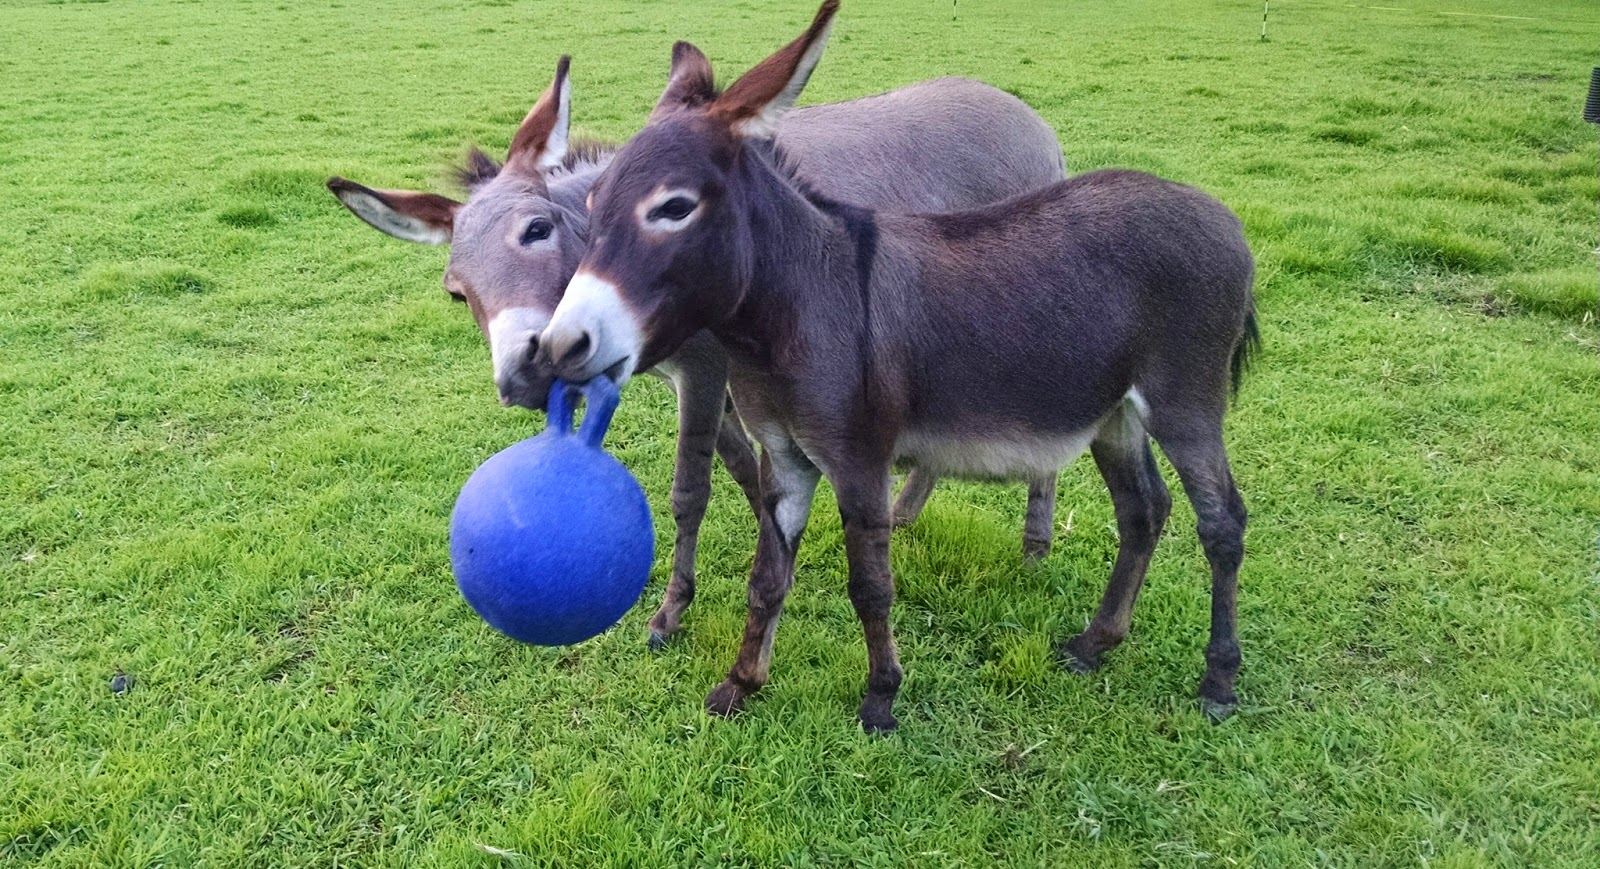 two miniature donkeys with a ball